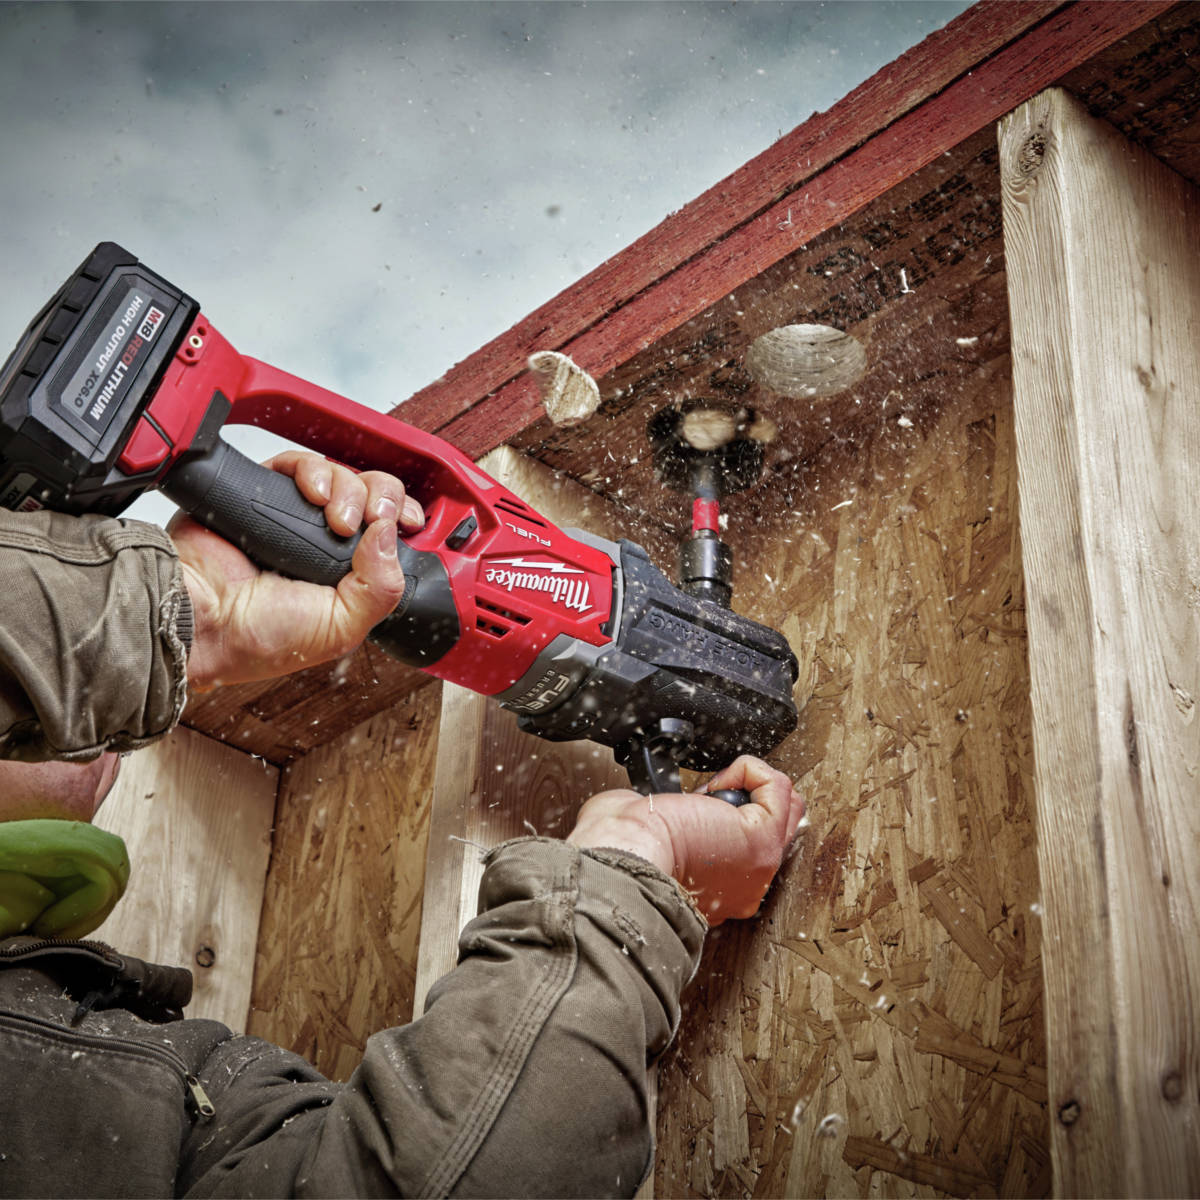 M18 FUEL HOLE HAWG Right Angle Drill with 7/16 in. QUIK-LOK is the lightest in its class